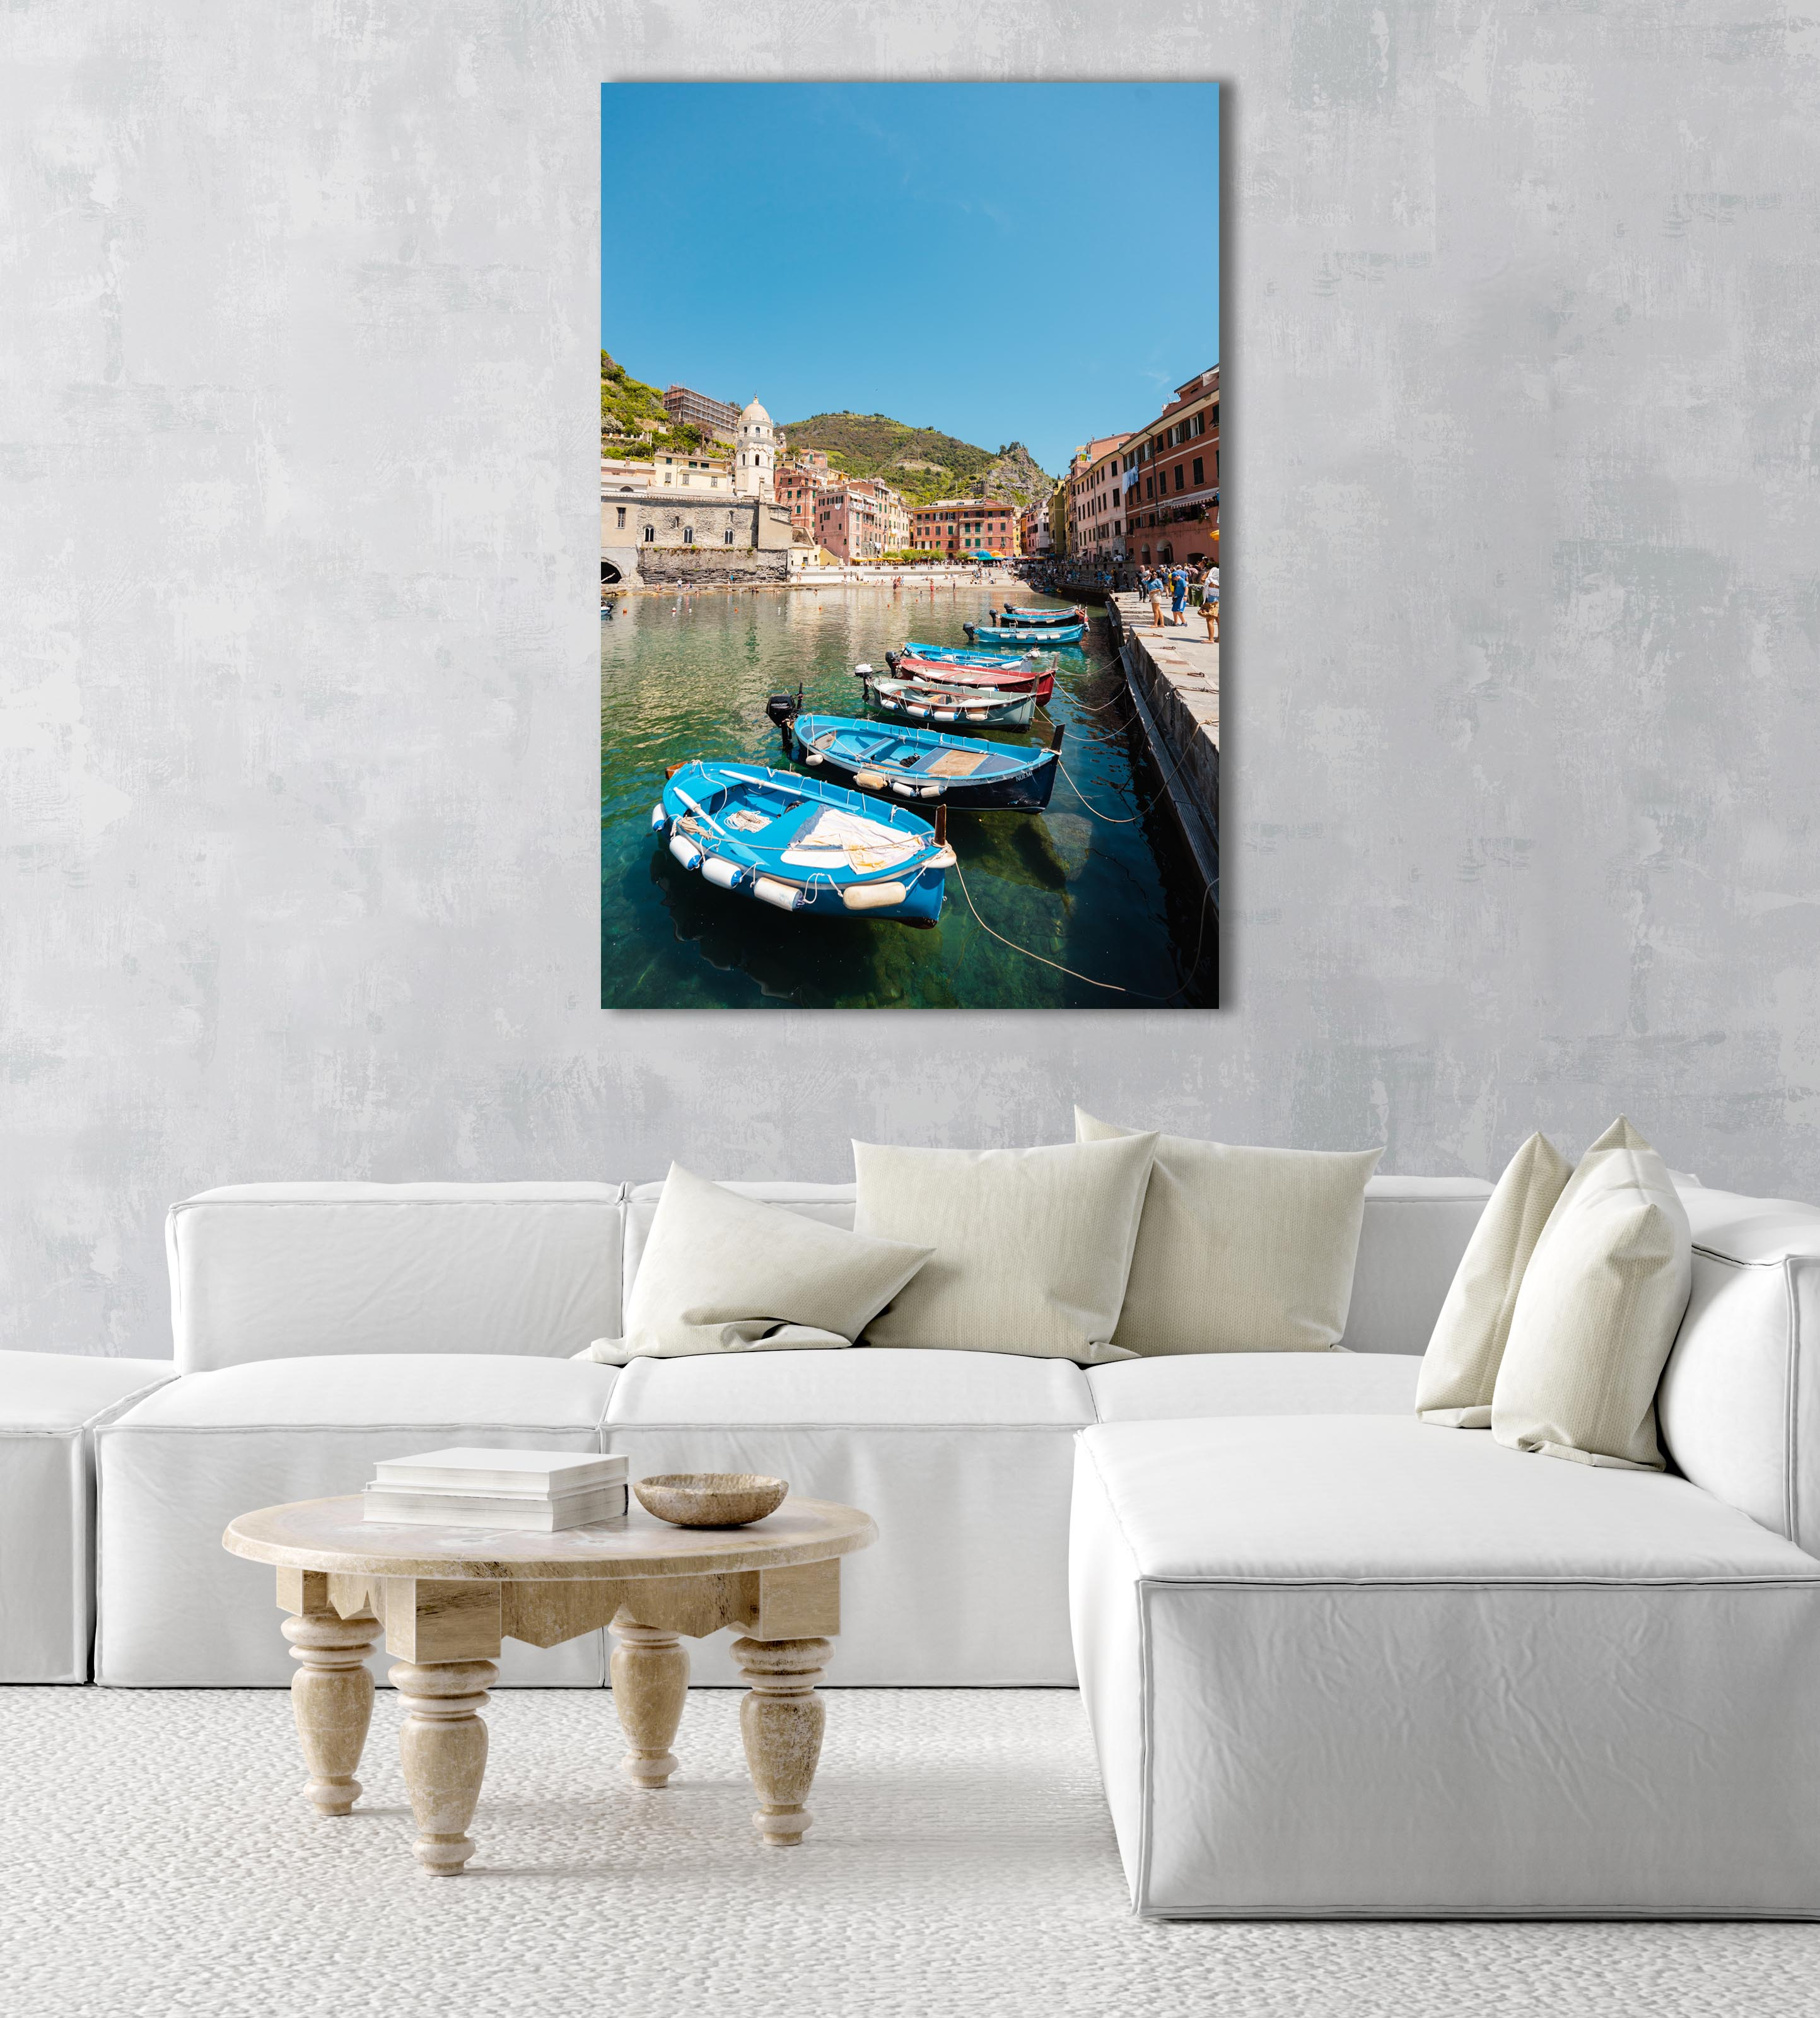 Boats lined up at Promenade in Vernazza Italy in an acrylic/perspex frame